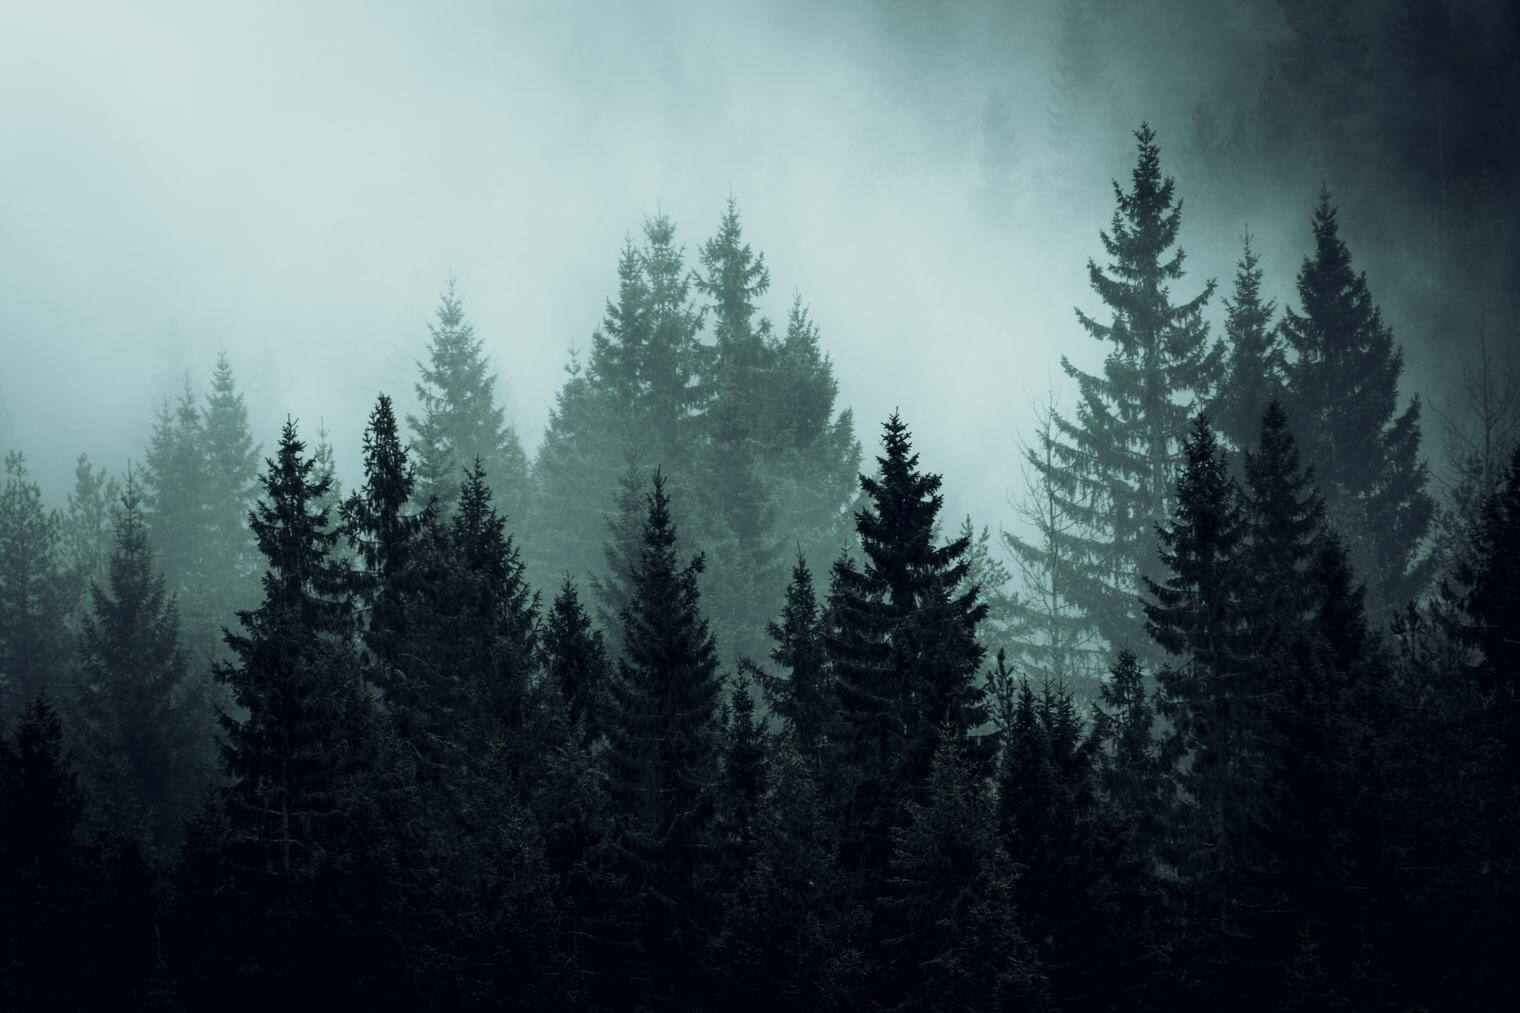 Dark and Moody Forest Landscape